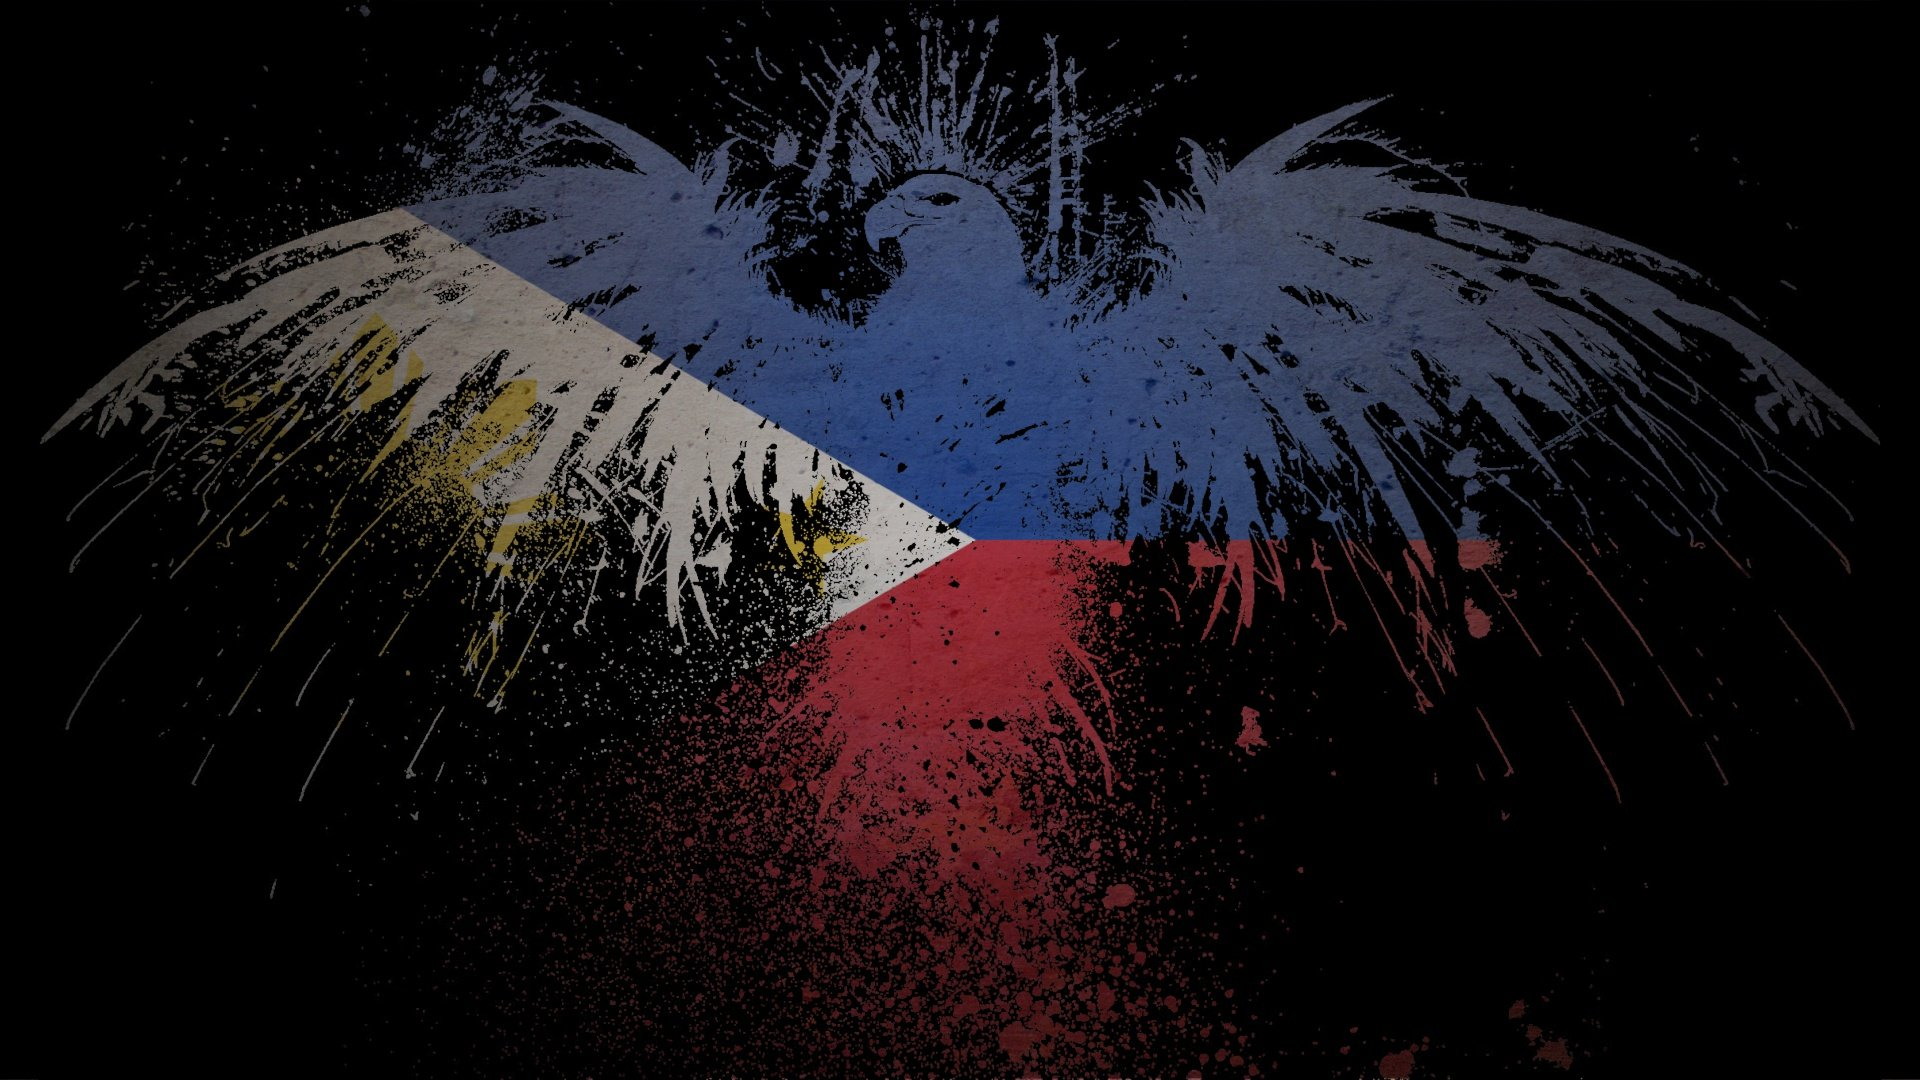 Philippine wallpaper sf wallpaper philippines world map wallpaper gumiabroncs Choice Image